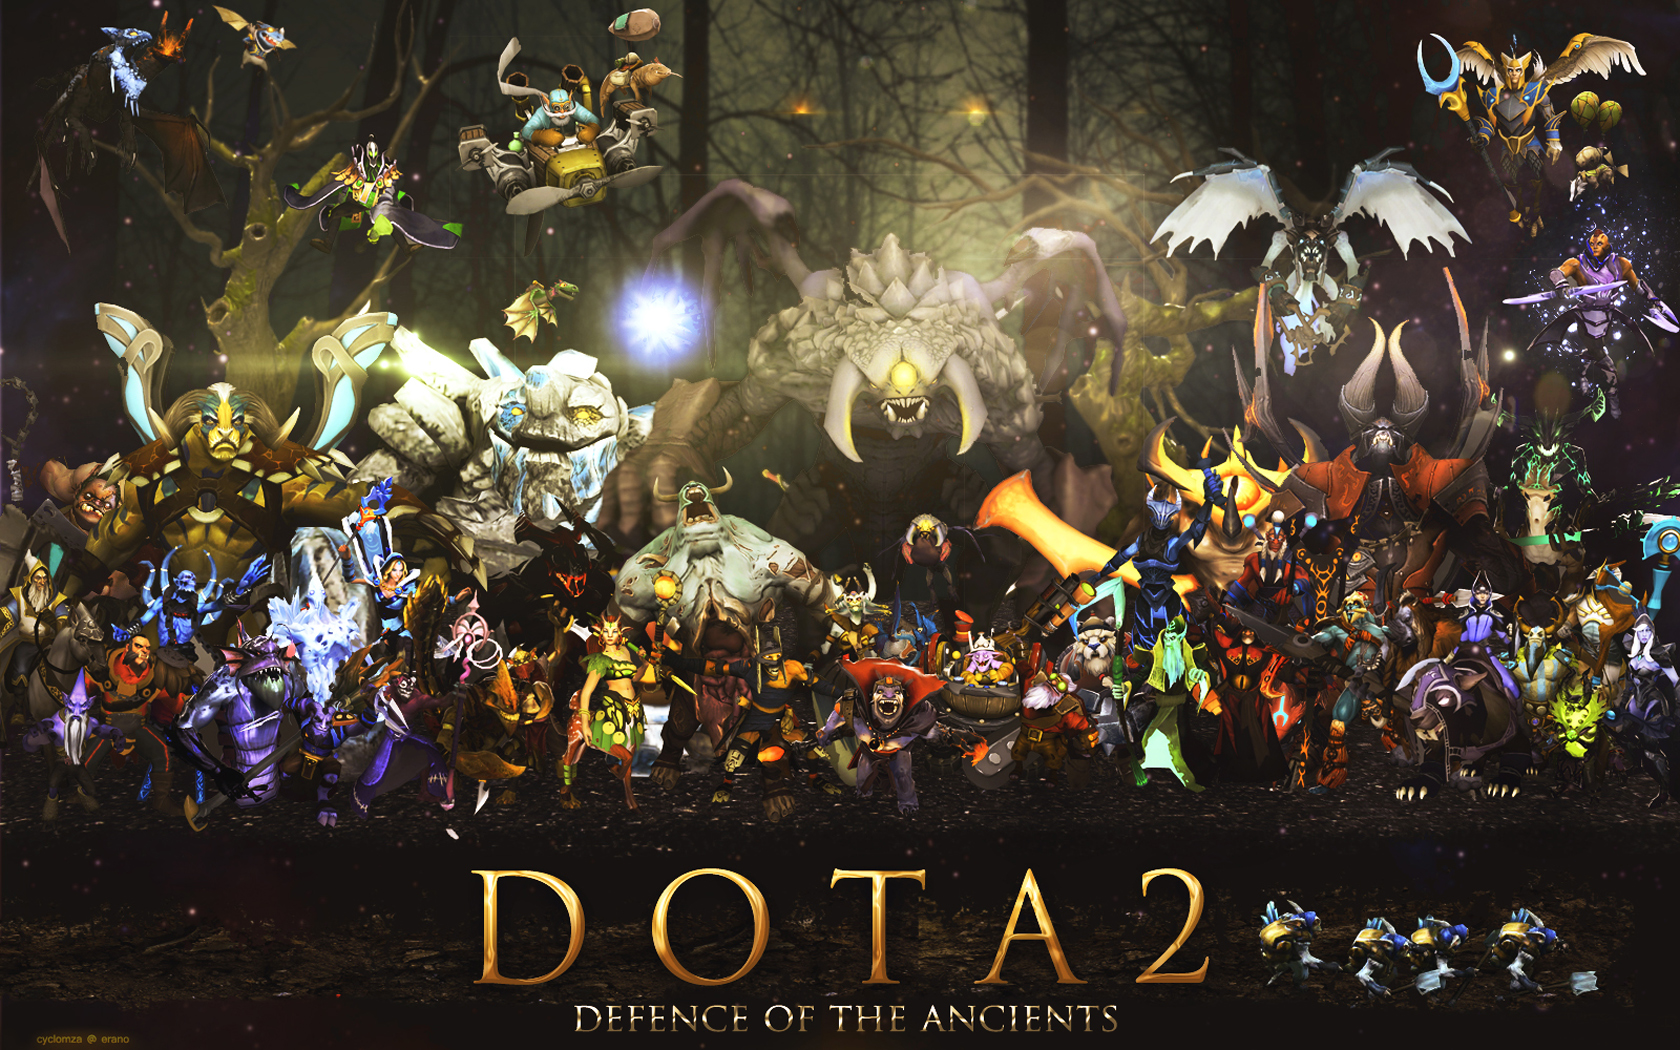 Free Download Defense Of The Ancients Games 1680x1050 For Your